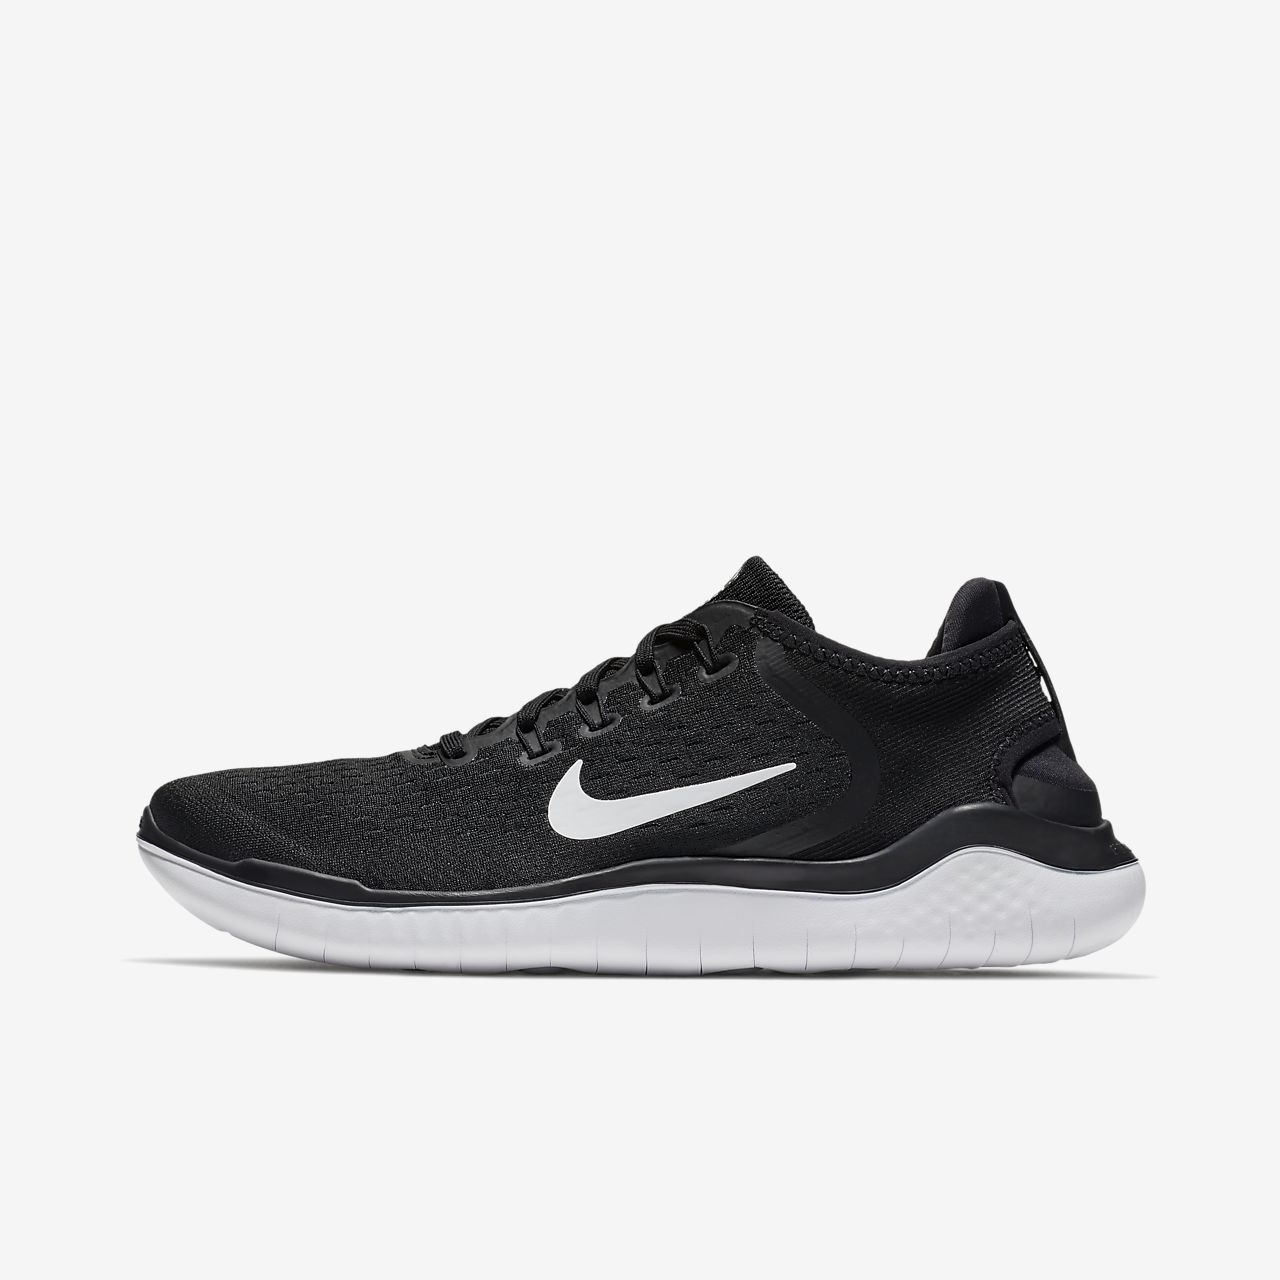 9ea4b4ed131f Nike Free RN 2018 Men s Running Shoe. Nike.com IN